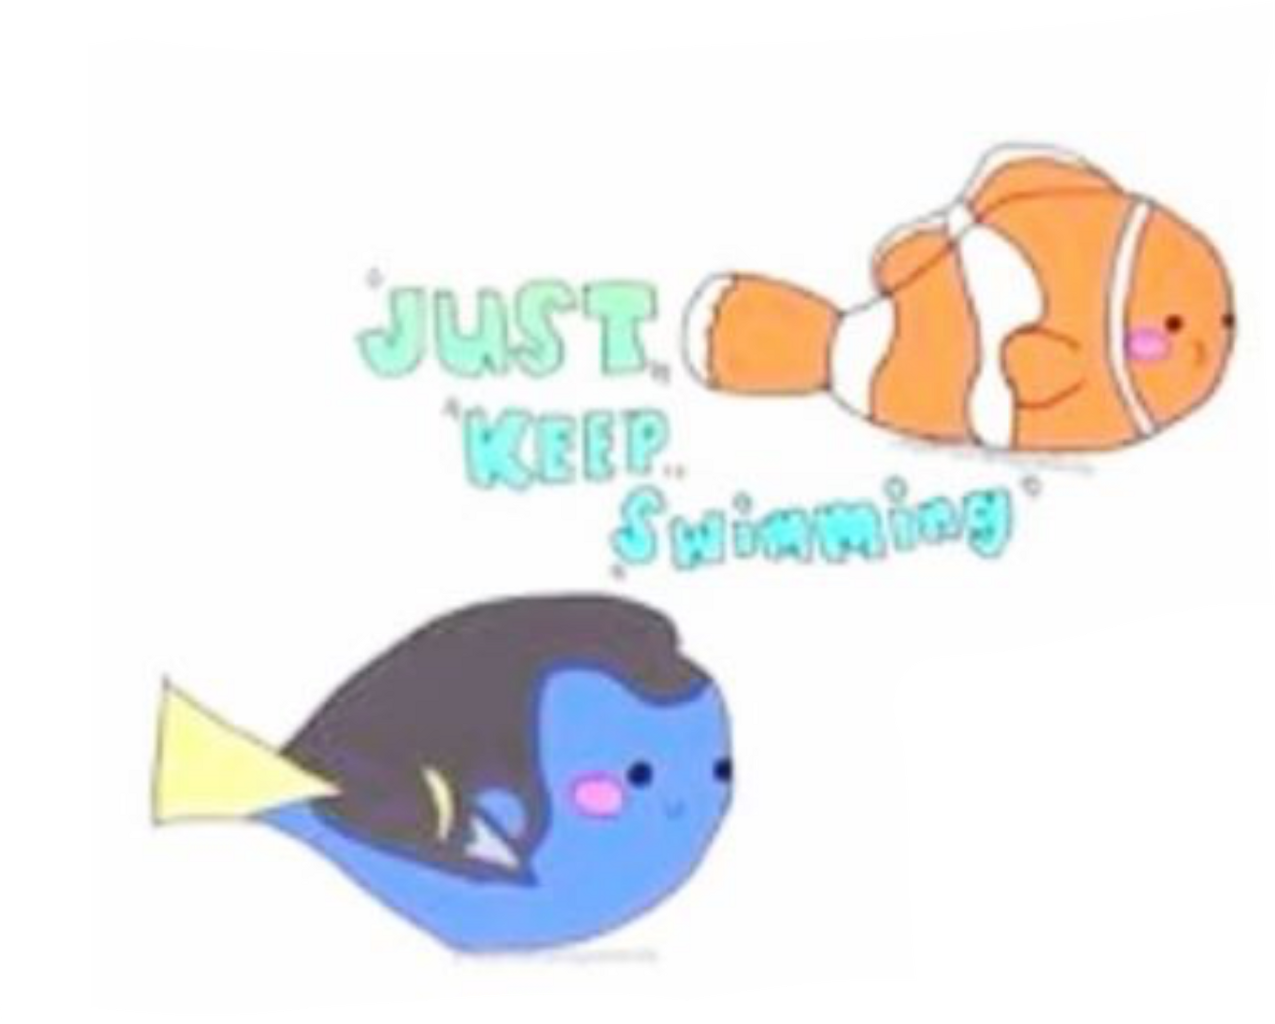 Dory clipart just keep swimming. Spacer nemo justkeepswimming